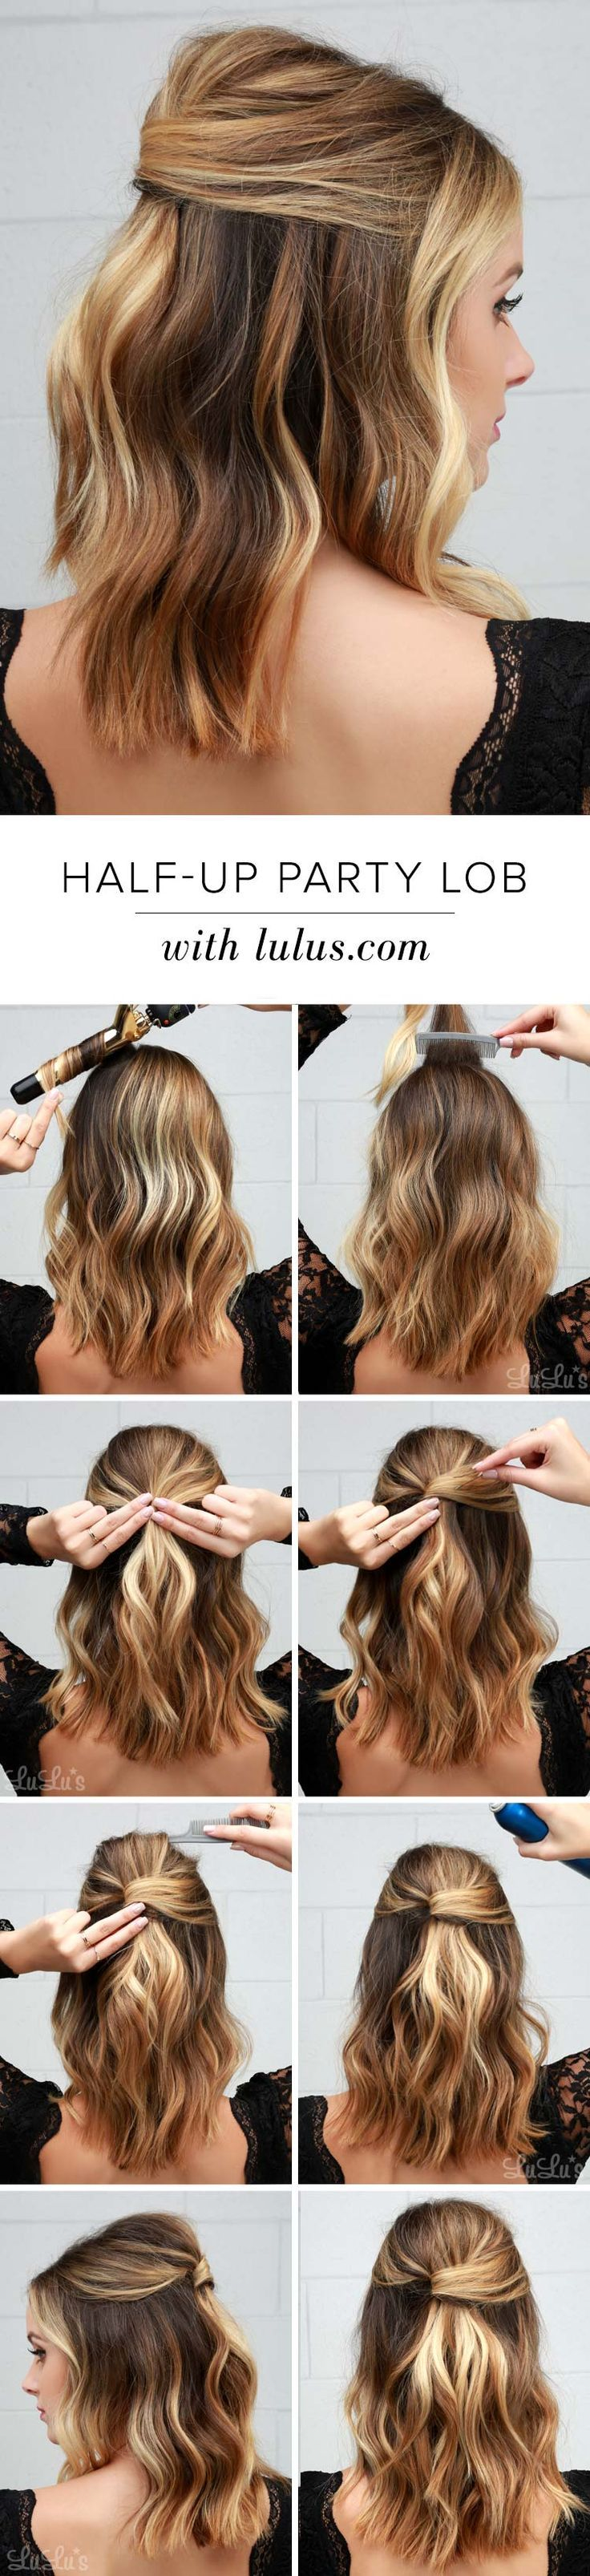 The 196 best Hair tutorials images on Pinterest